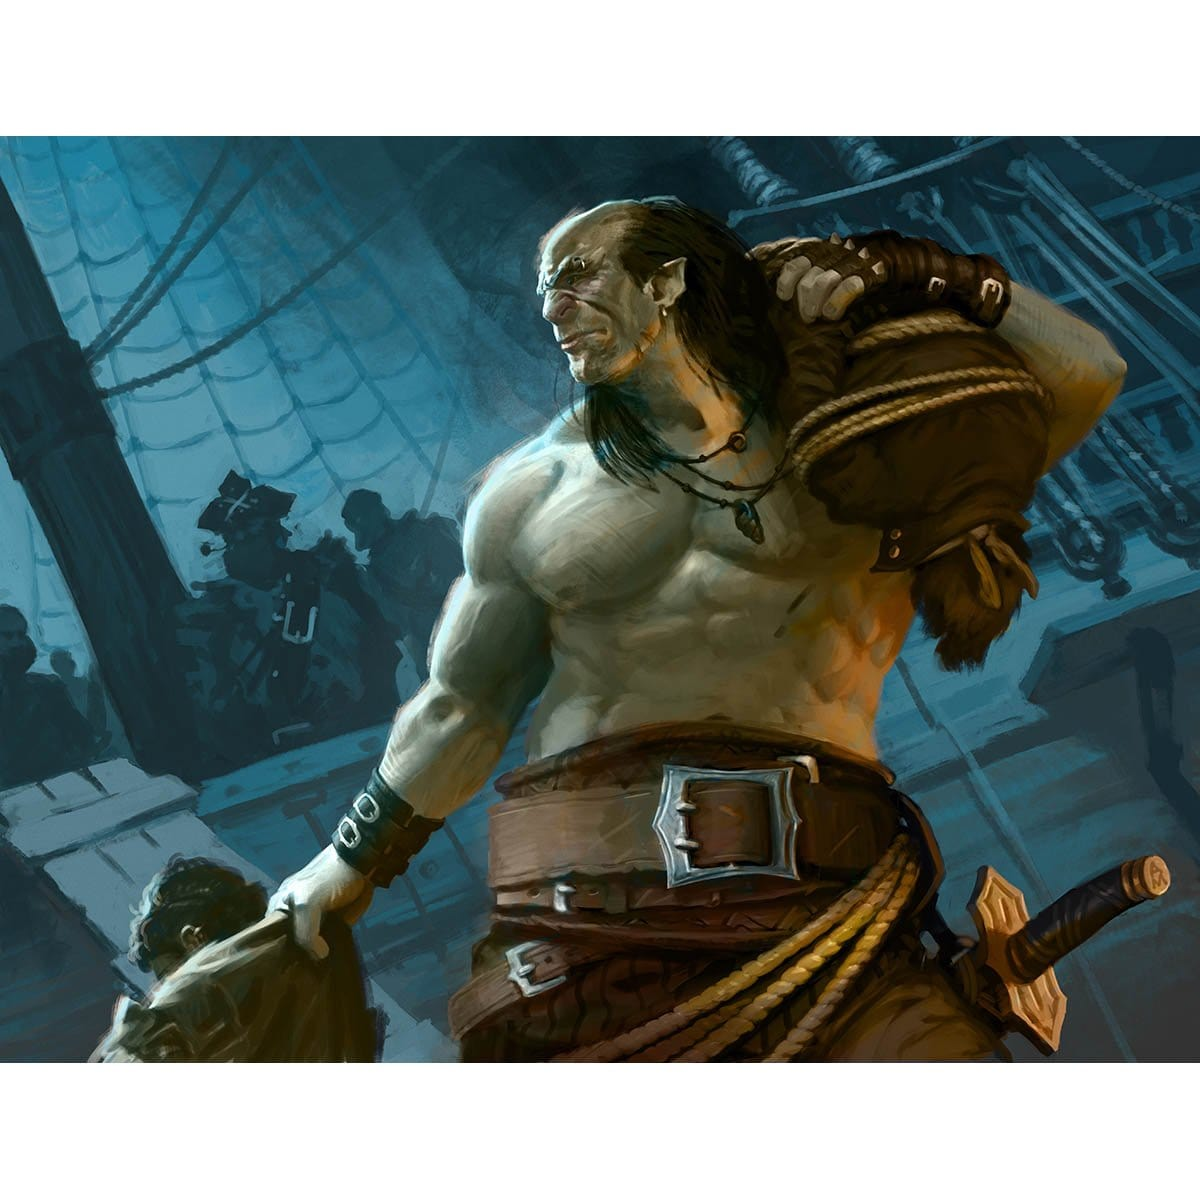 Ruthless Knave Print - Print - Original Magic Art - Accessories for Magic the Gathering and other card games